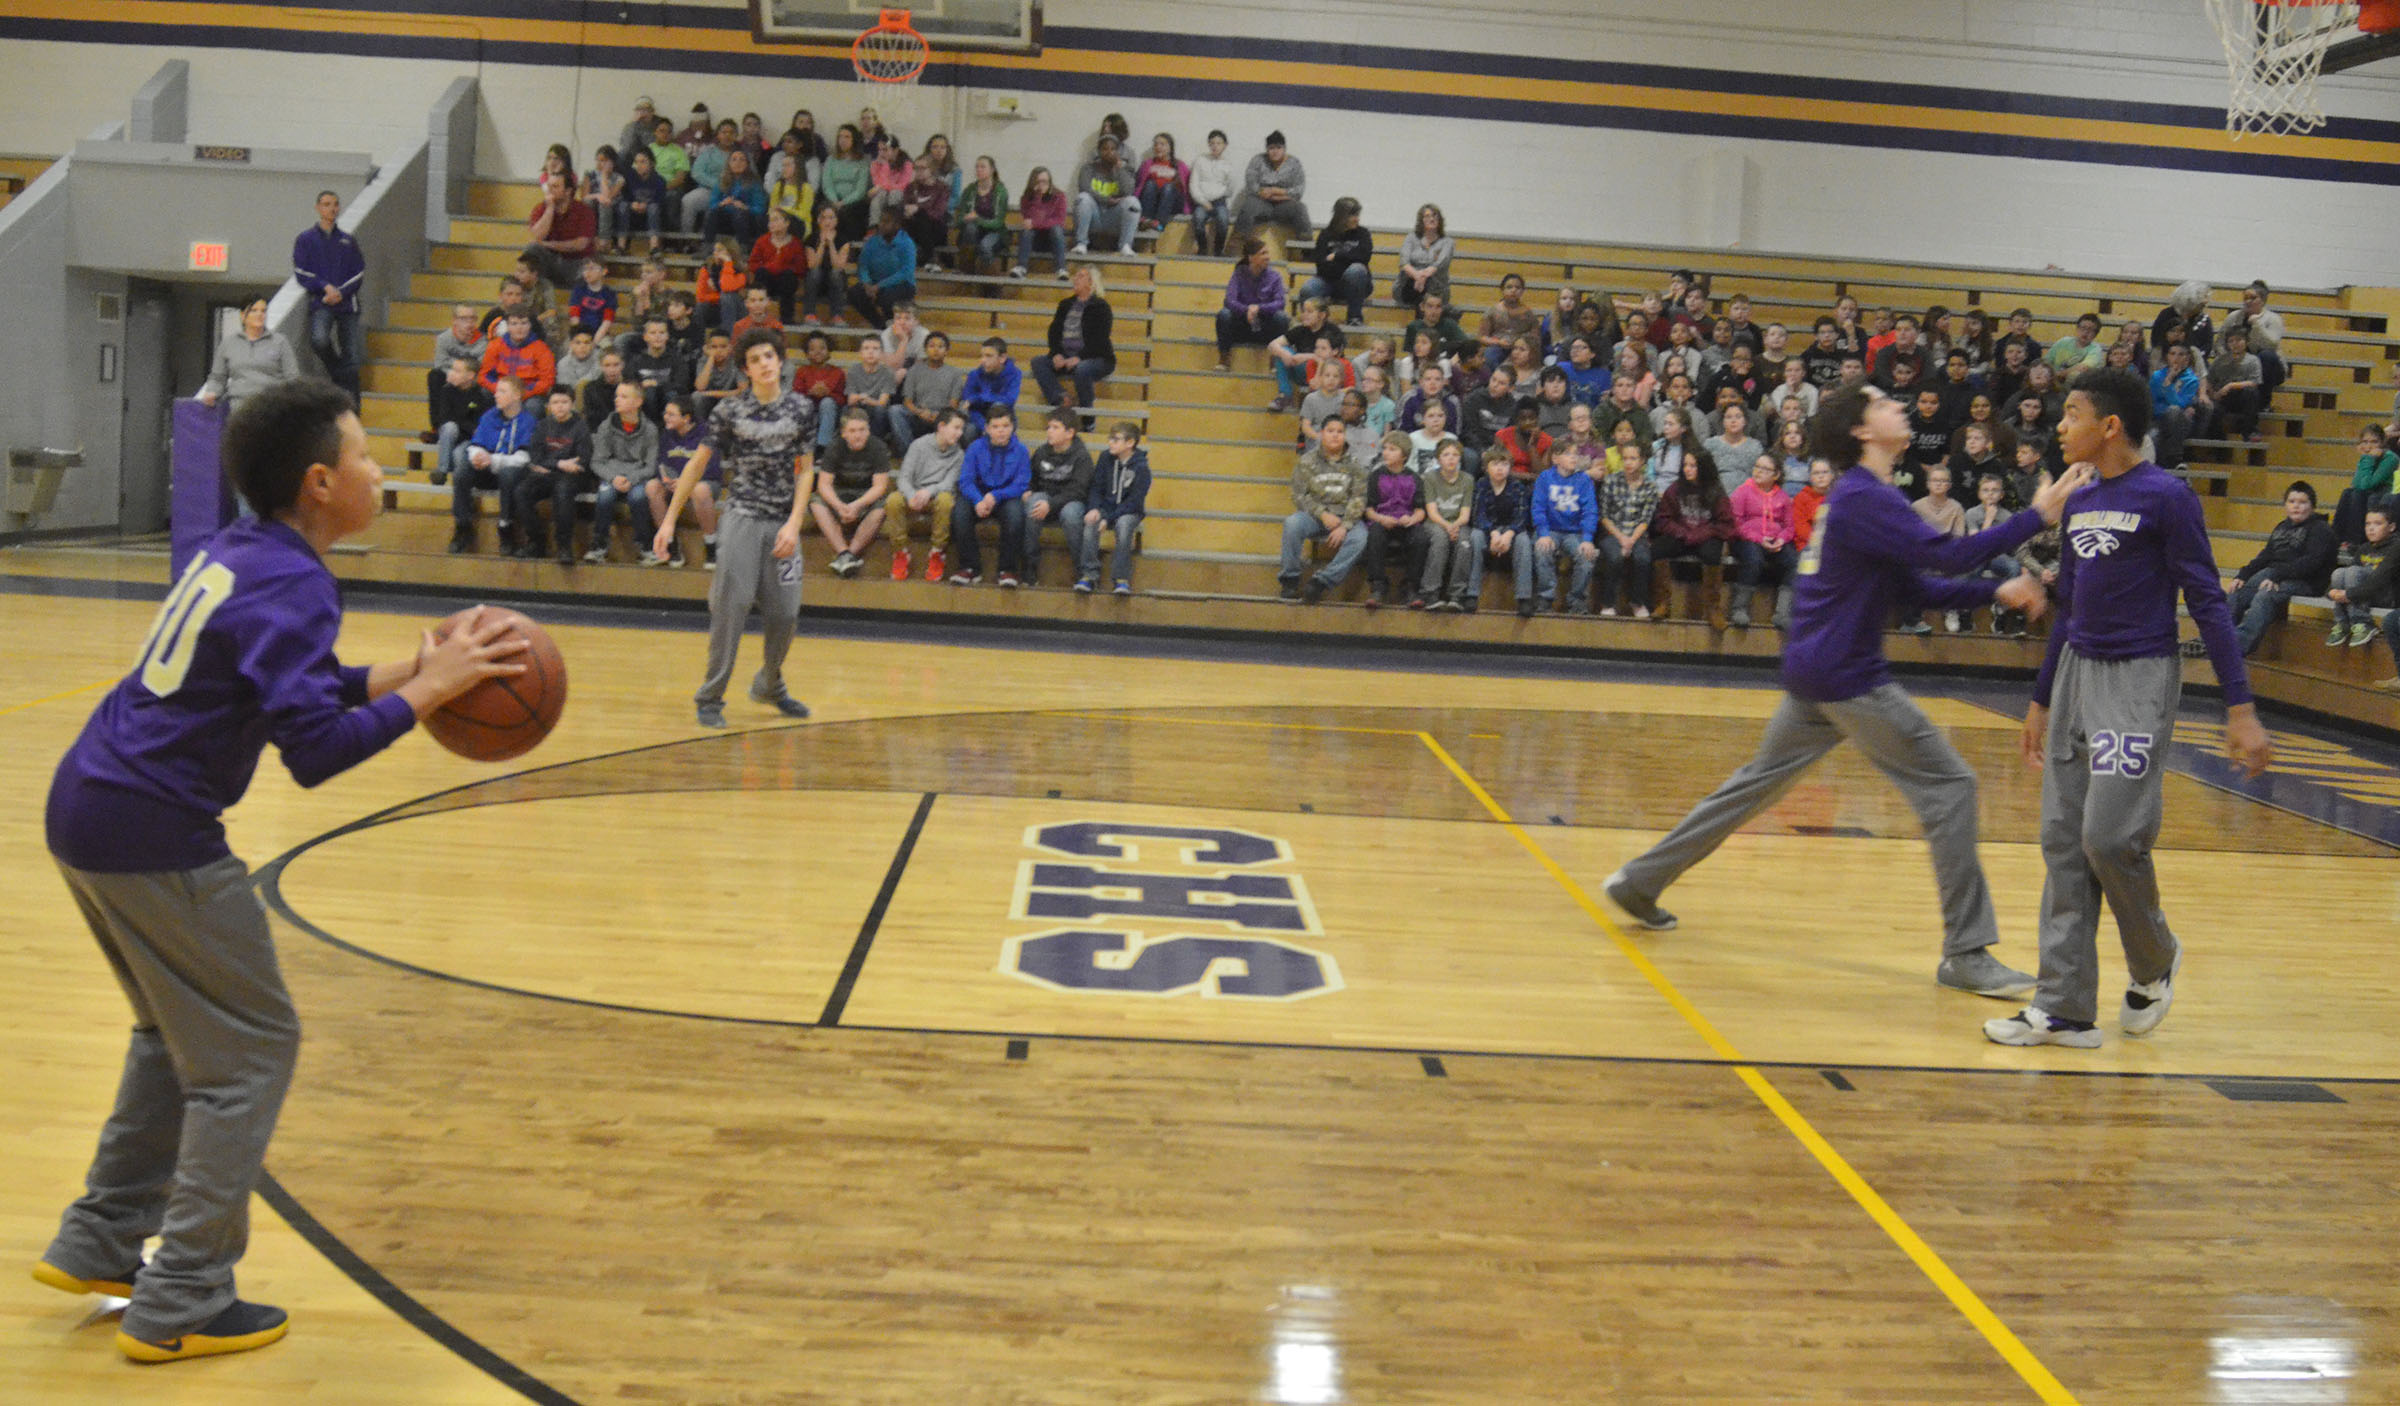 CMS boys' basketball players compete in a spirit game. Eighth-grader Jastyn Shively shoots the ball.